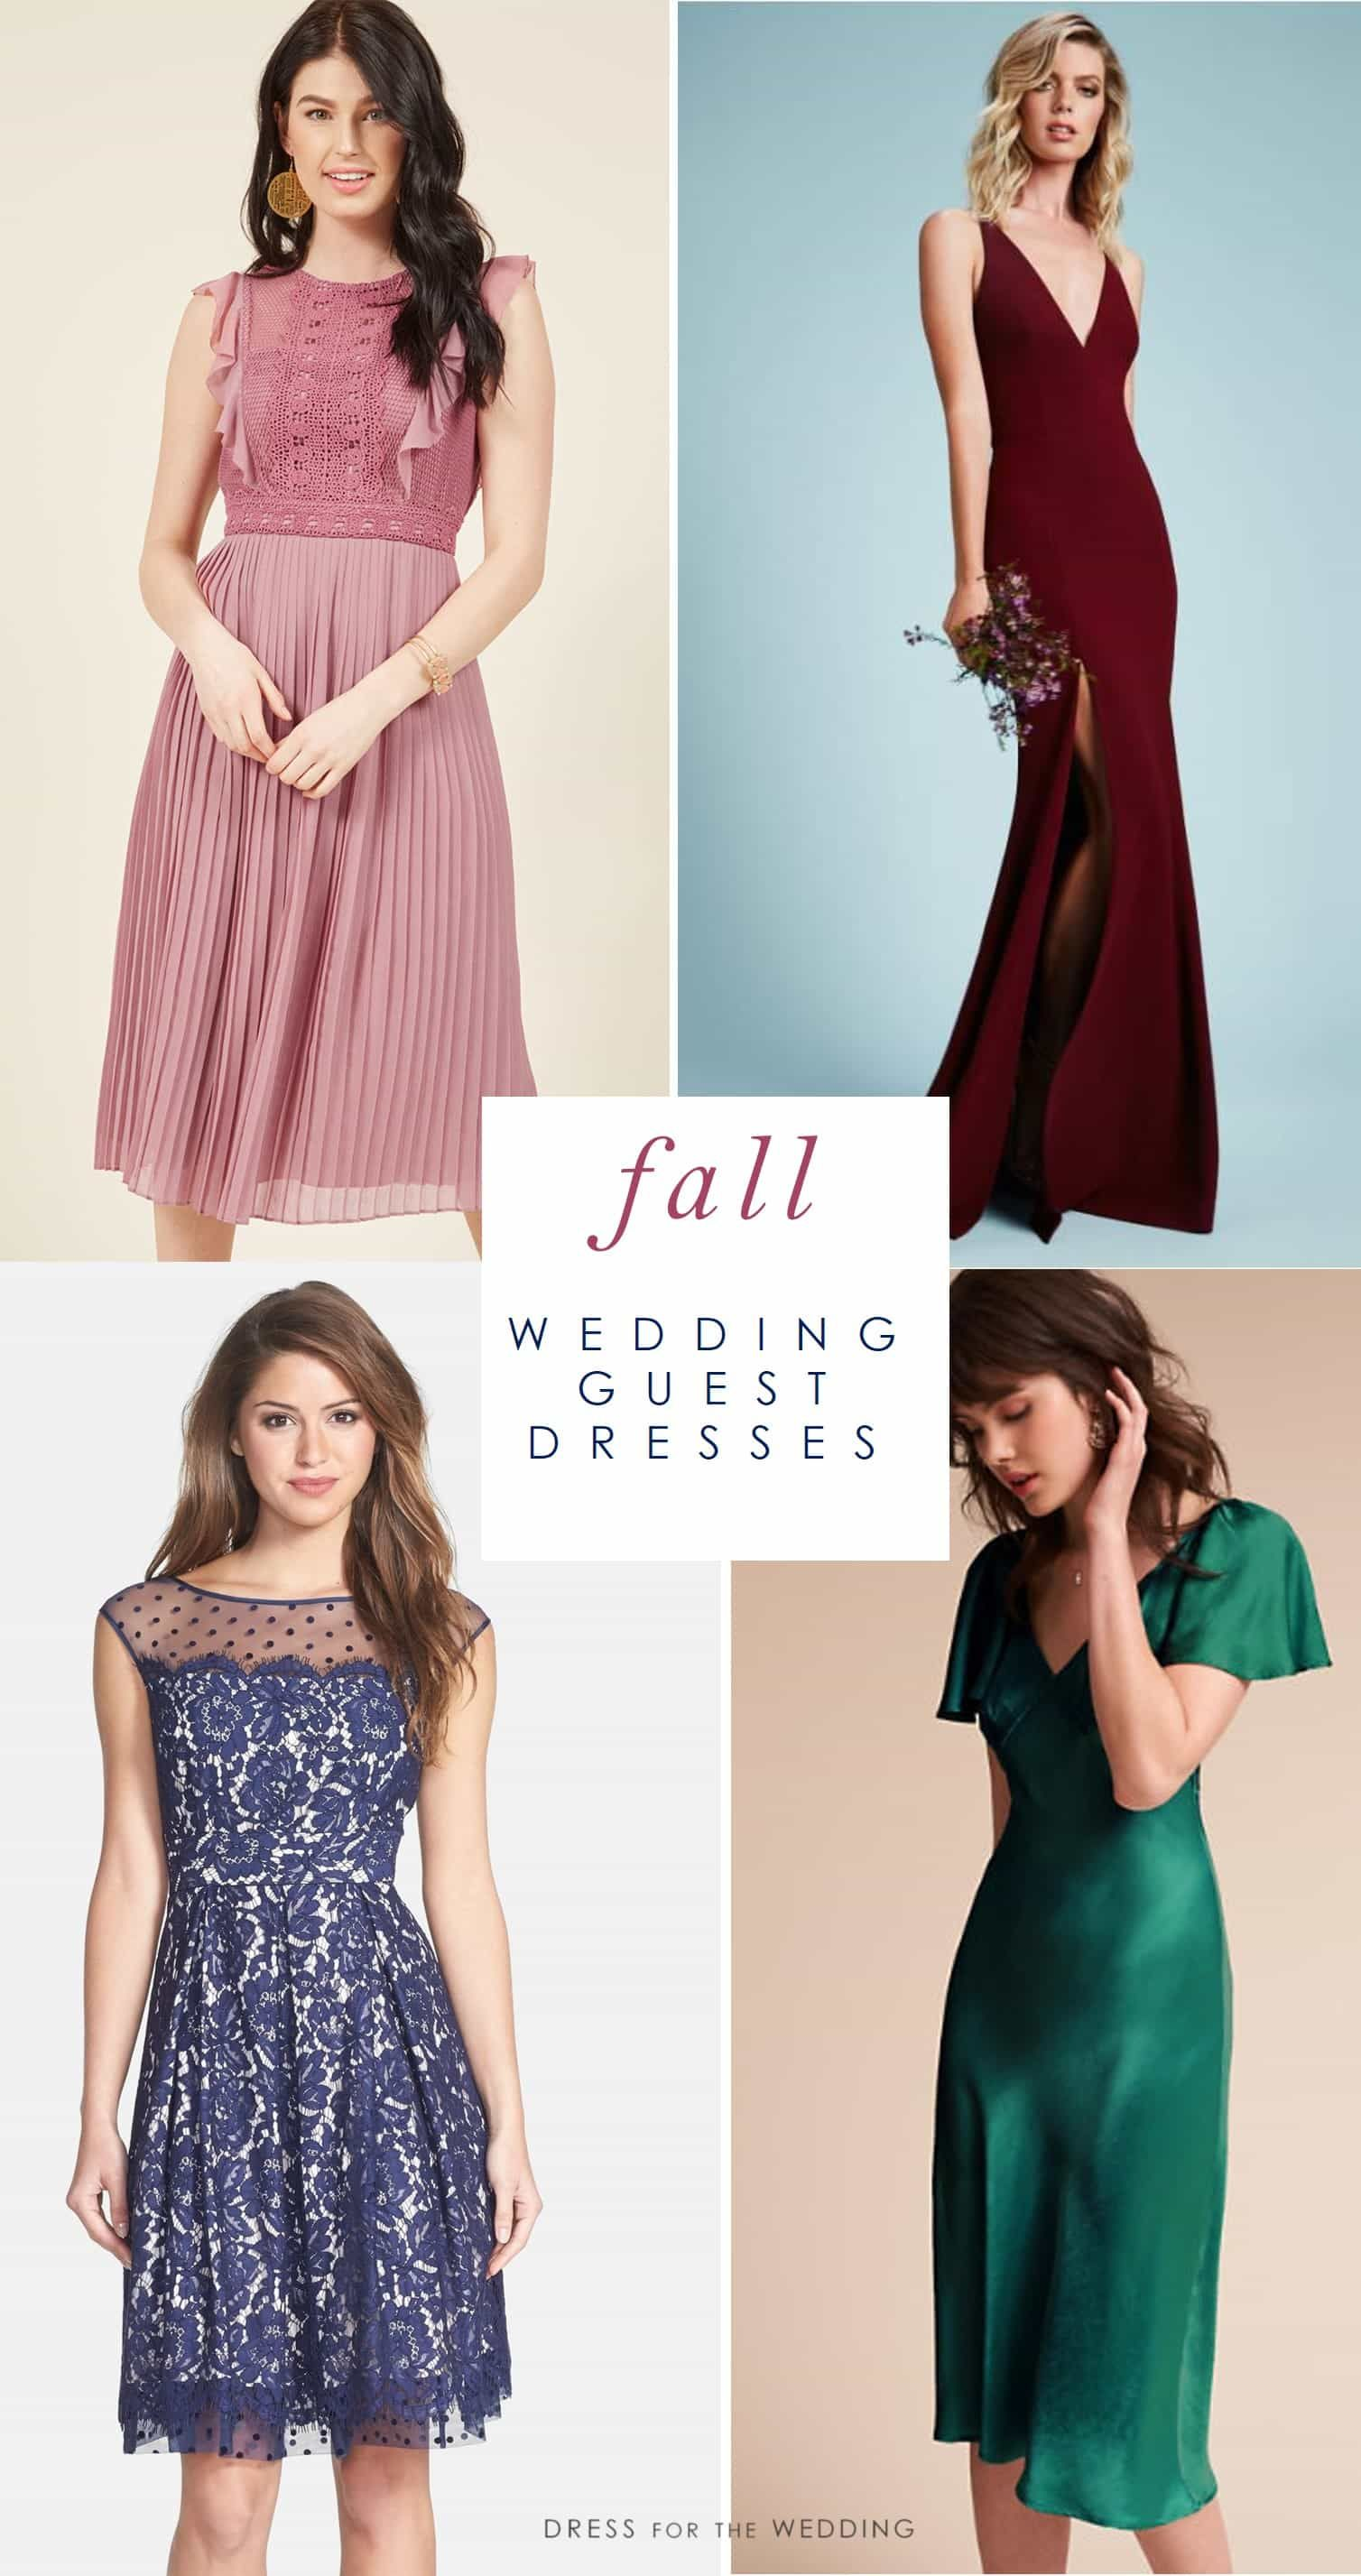 Dresses to wear to a fall wedding for a guest  Fall Wedding Guest Dresses  Wedding Guest Dresses  Pinterest